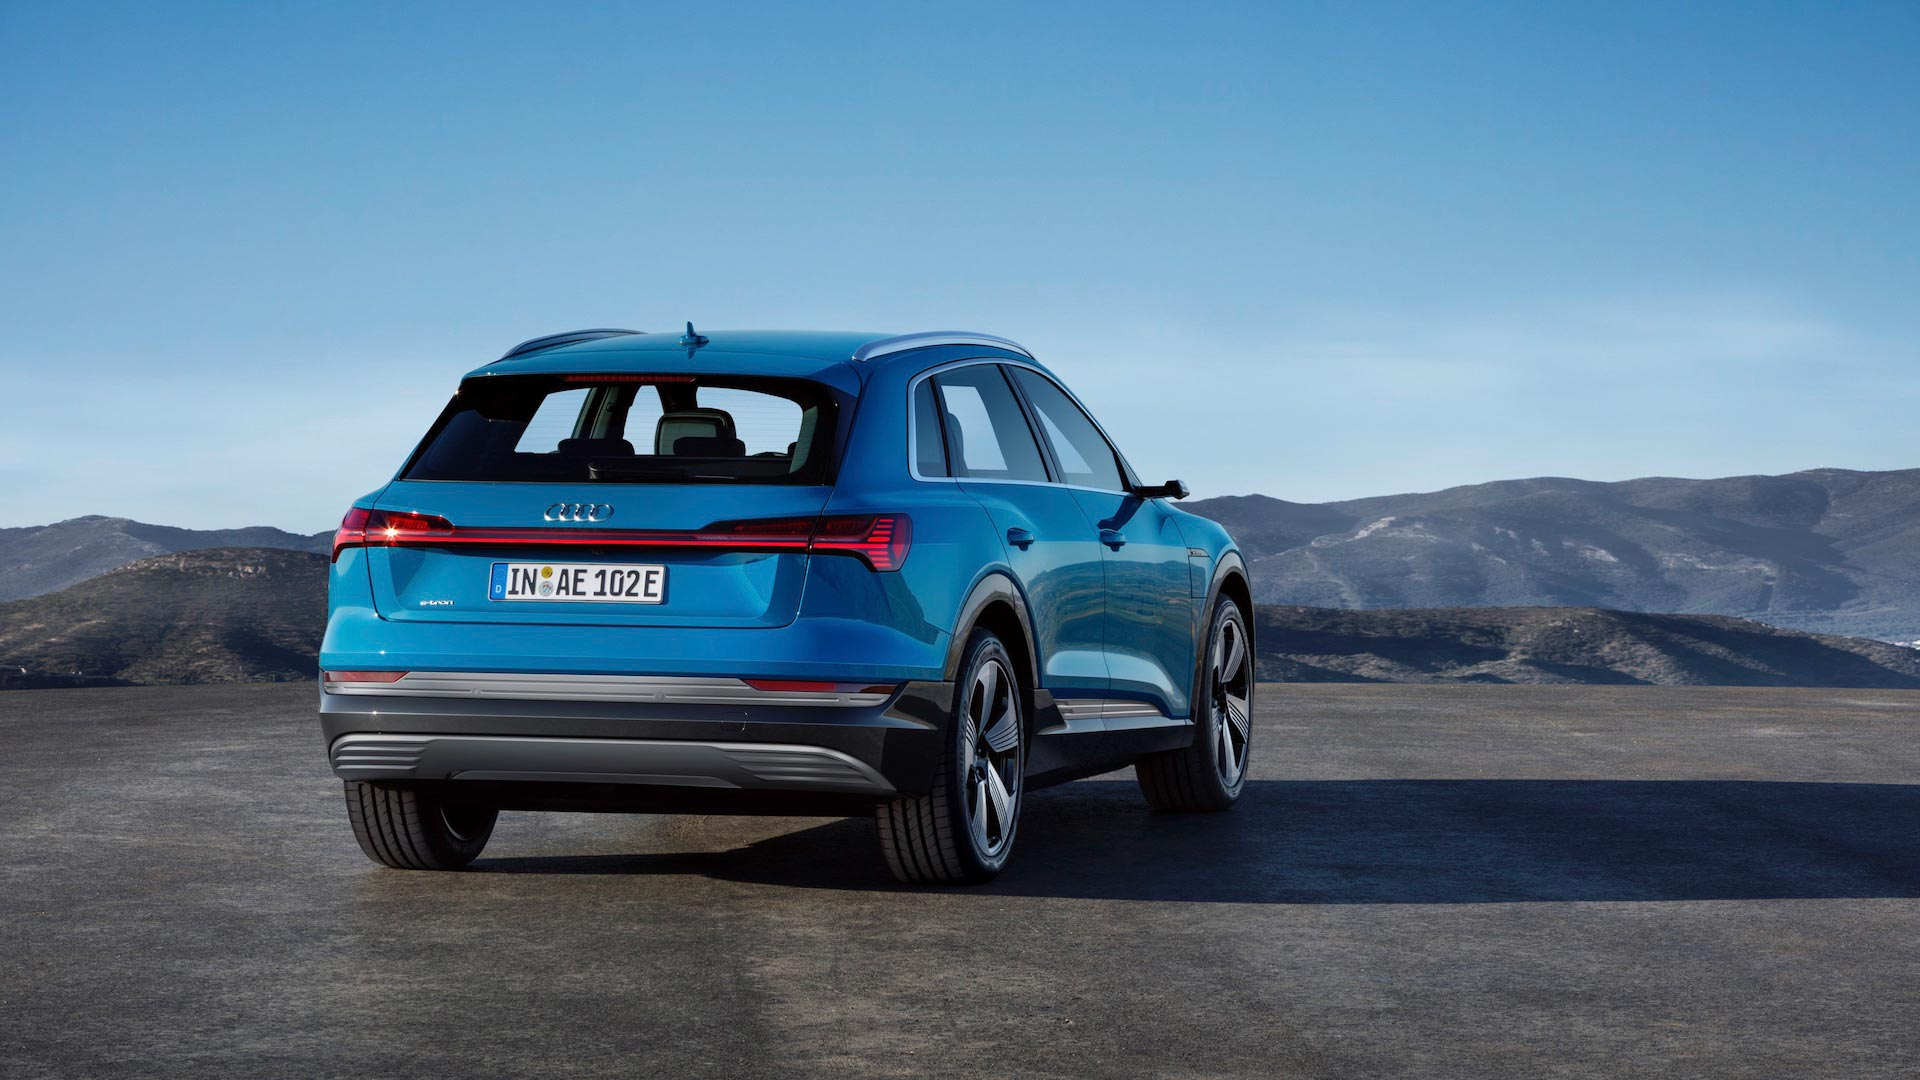 2019 Audi e-tron SUV now ready to order in UK